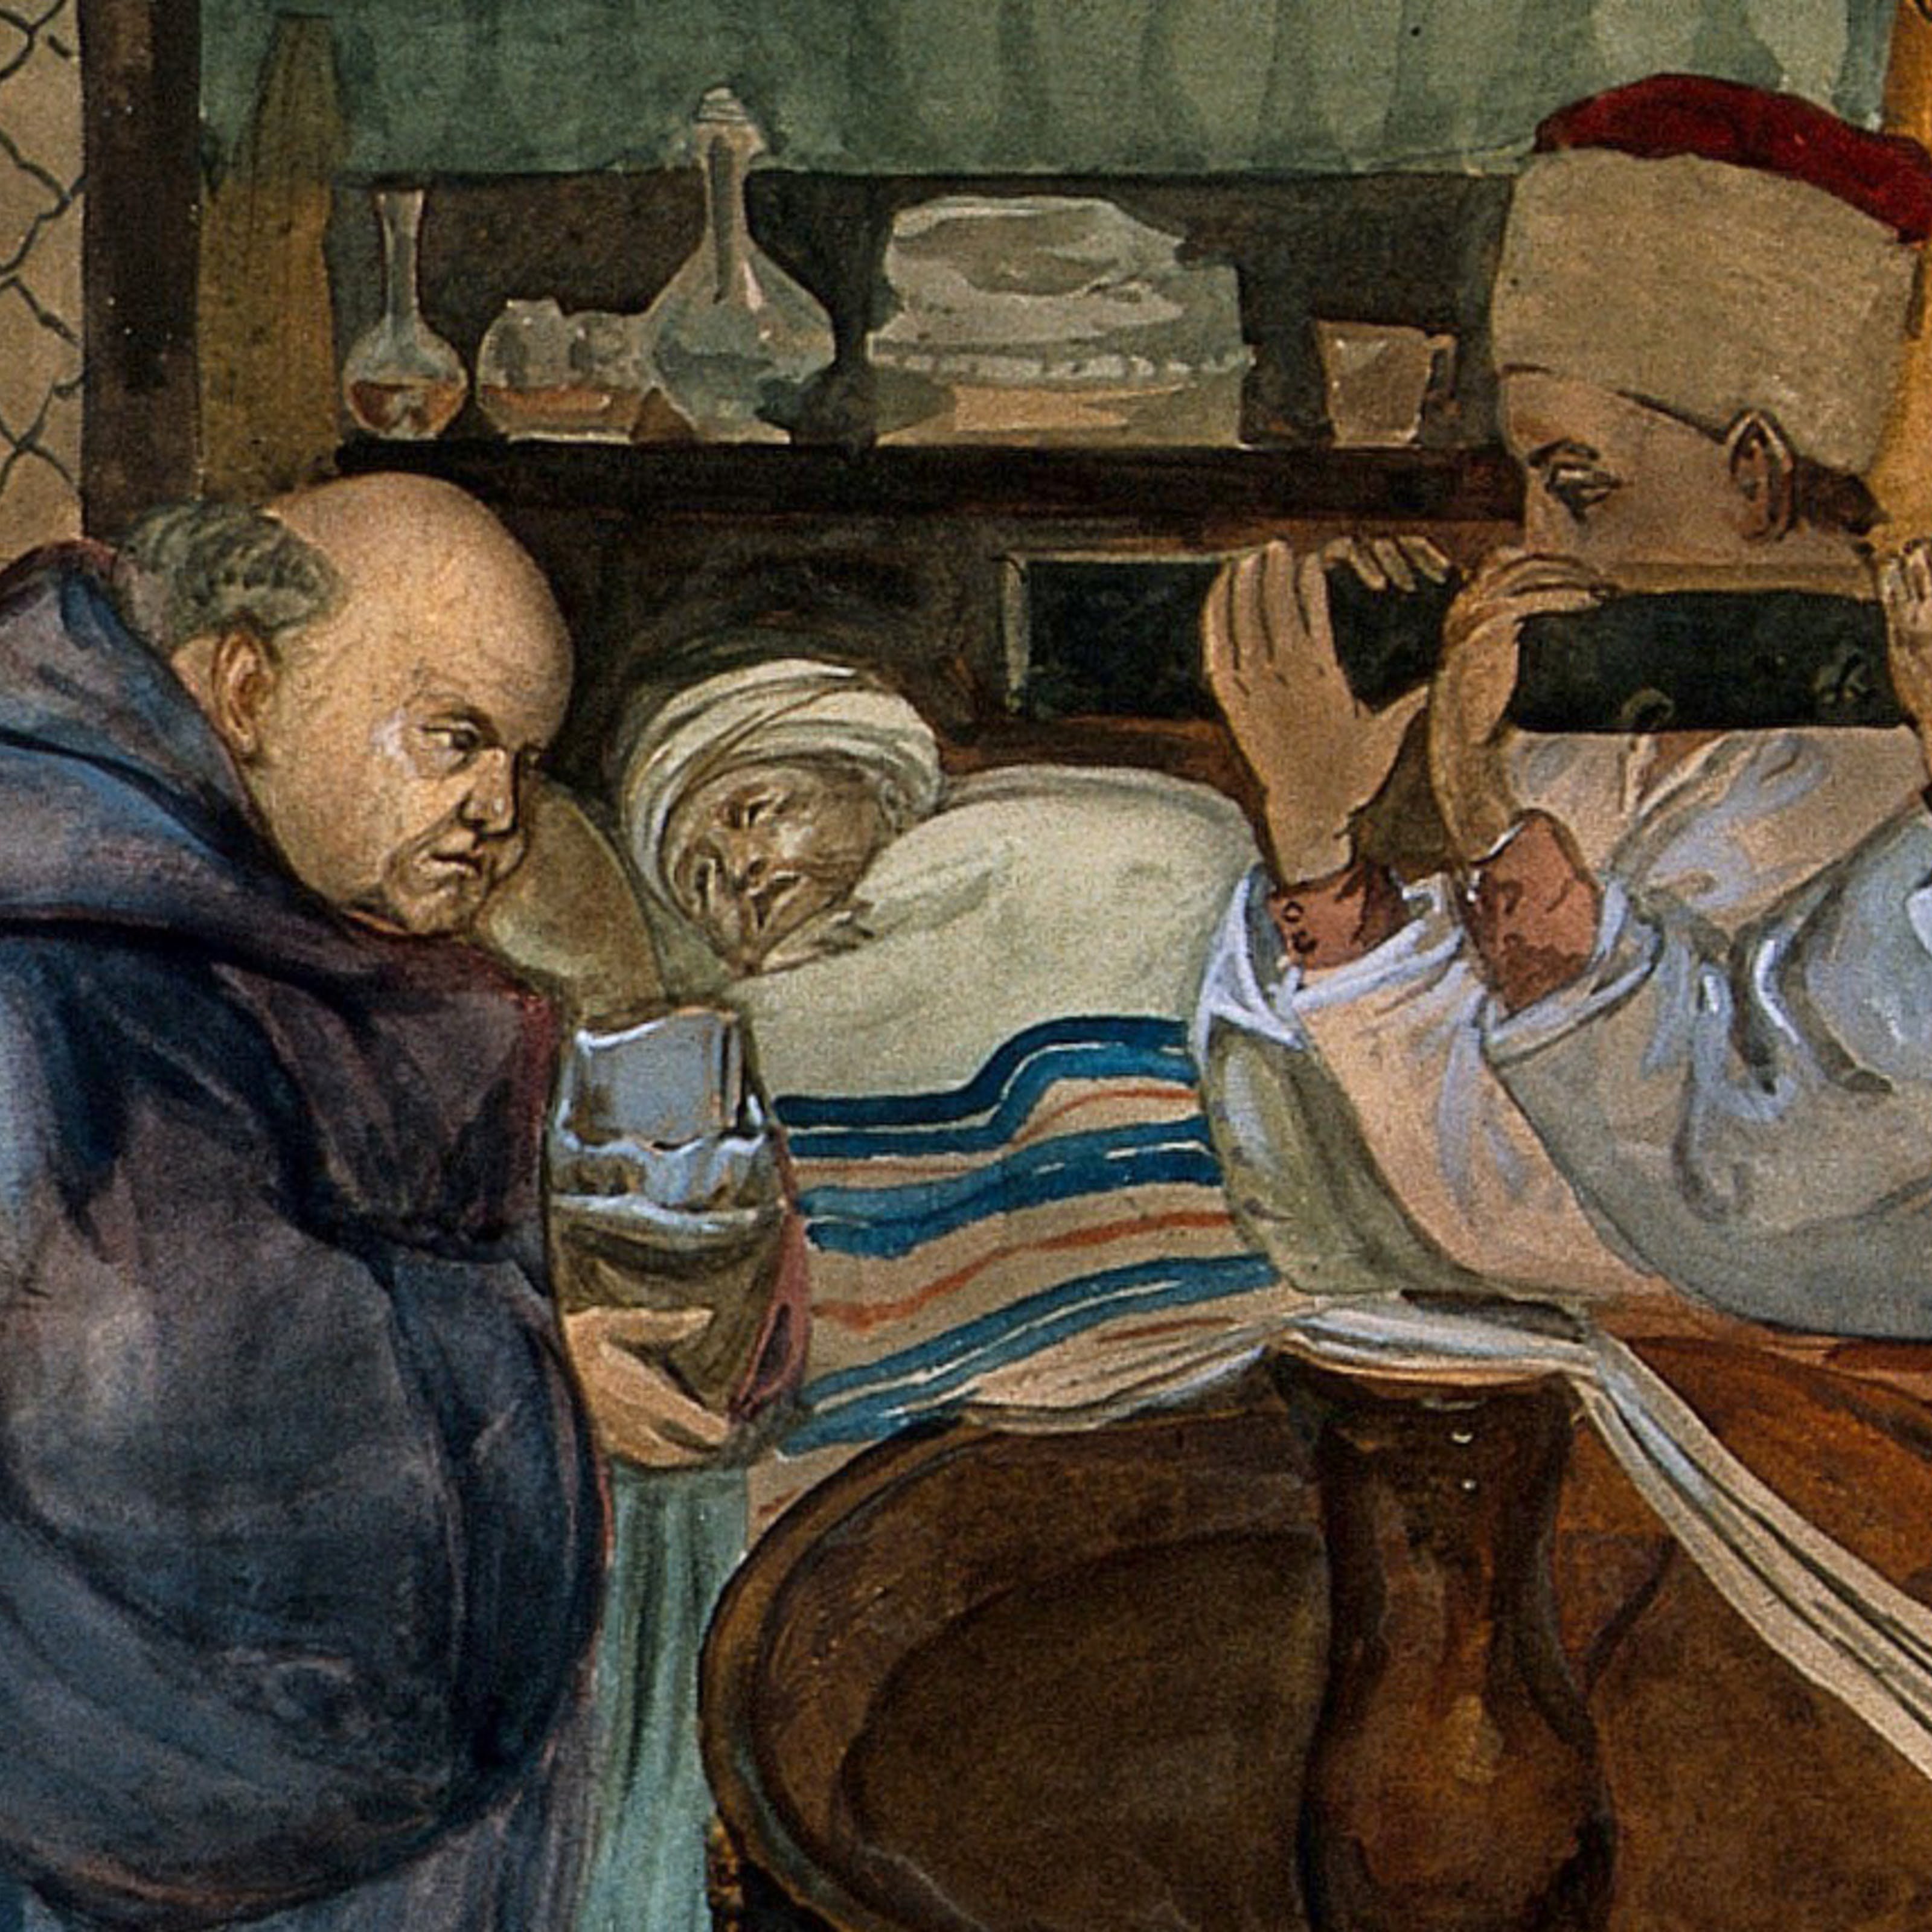 15th century fresco showing a monk taking the confession of a dying man.